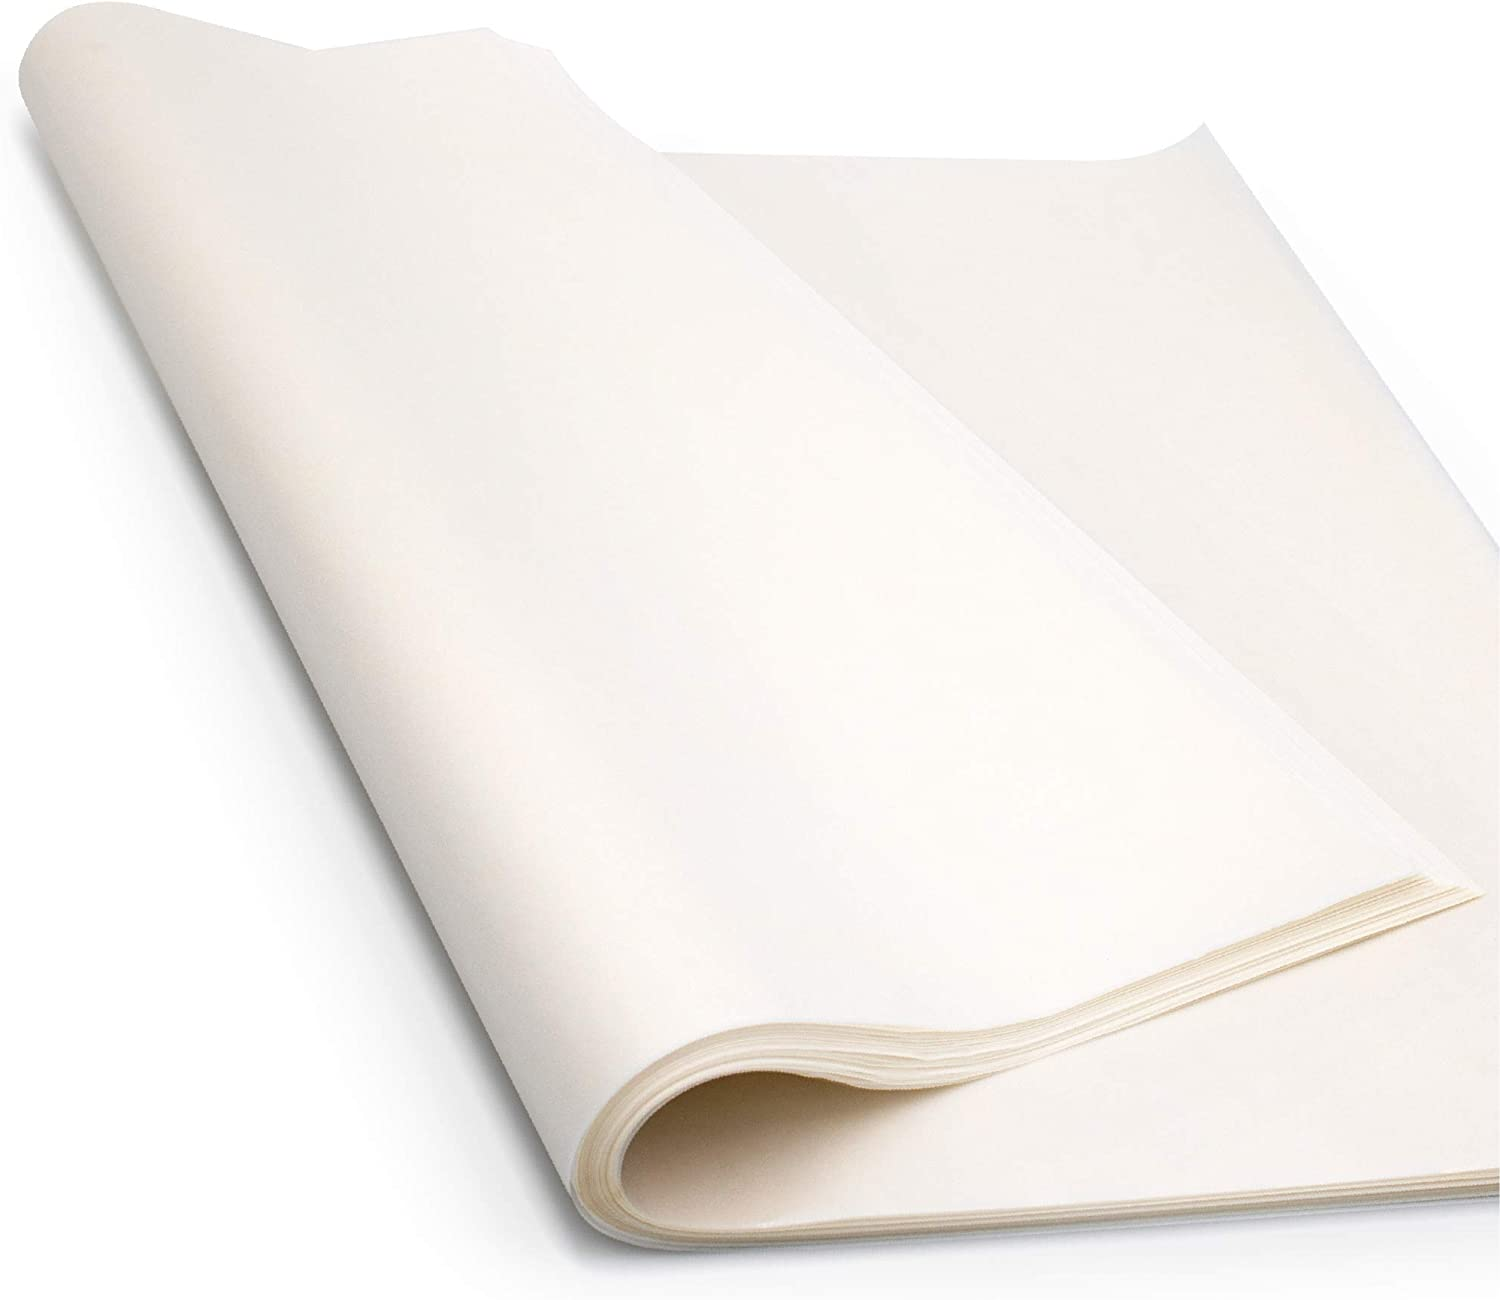 Glassine Paper Sheets (24 inches x 36 inches - 25 Sheets), Acid-Free with a Neutral PH for Protecting Documents, Drawings & Photographs by Paper Pros